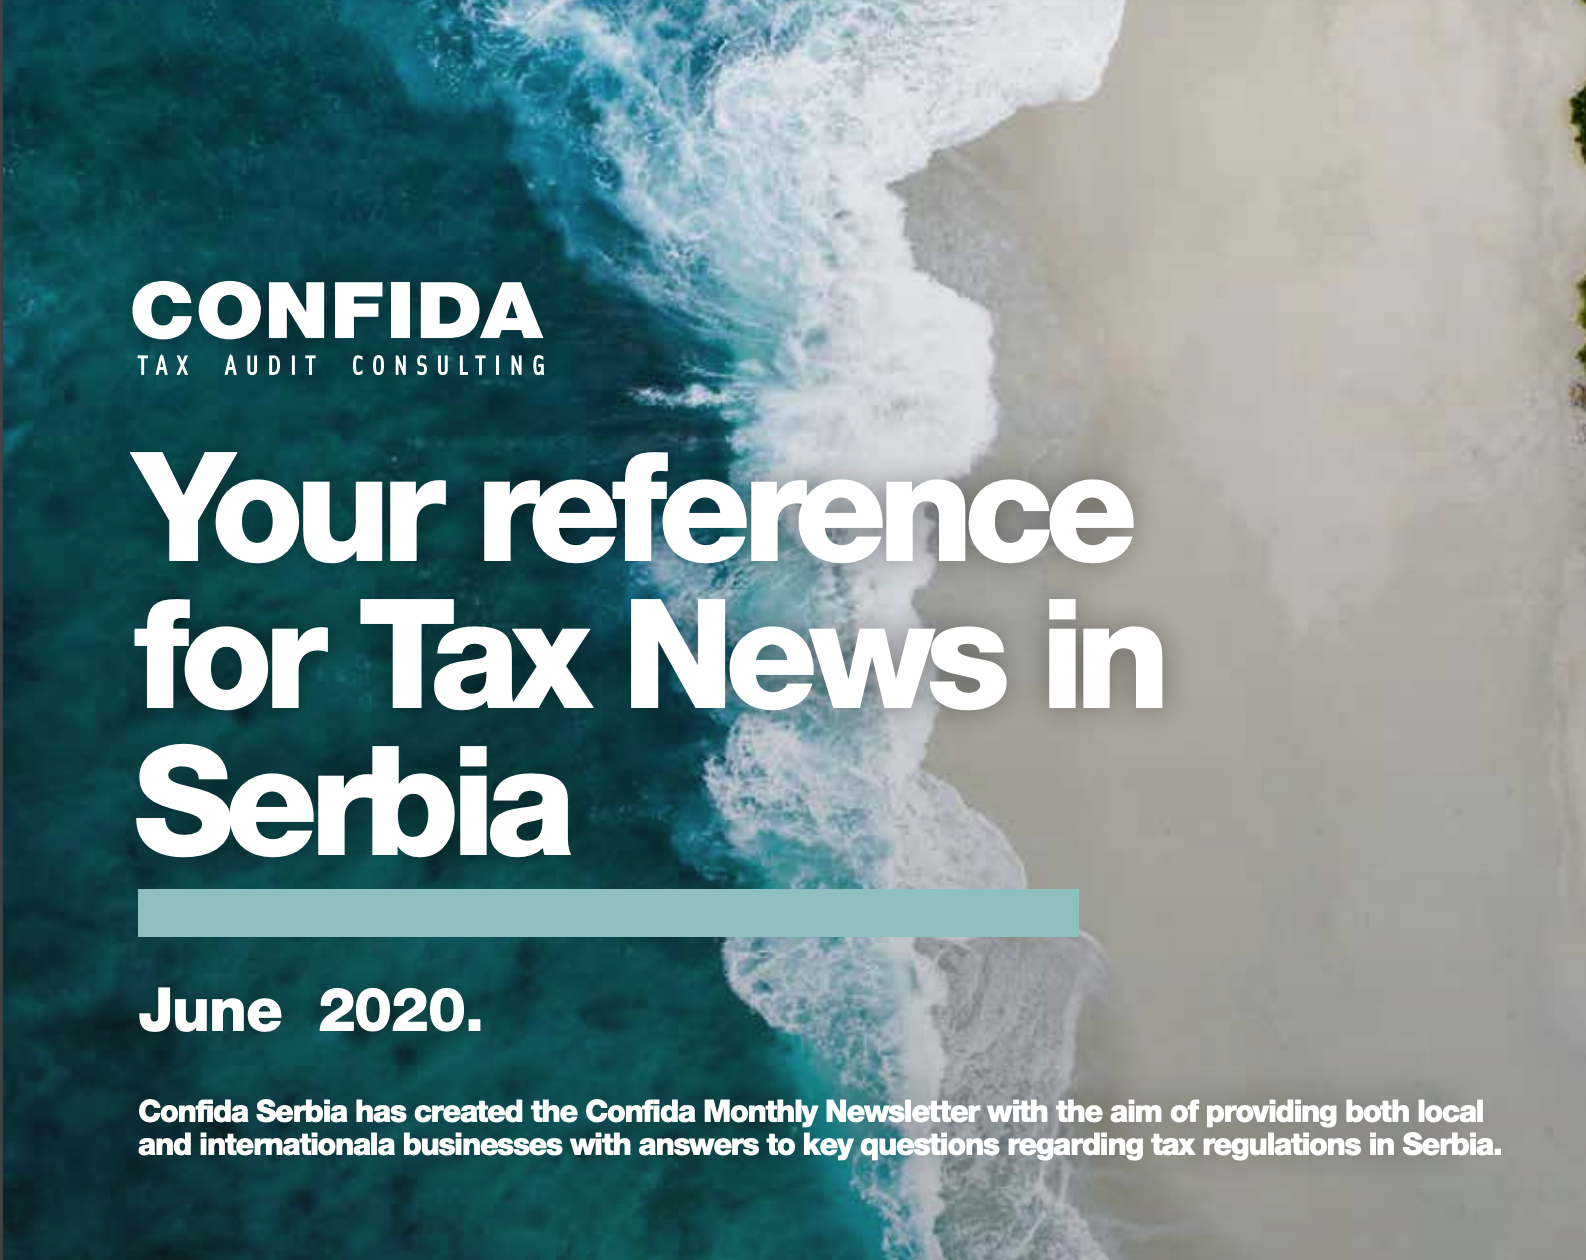 June 2020: Your reference for Tax News in Serbia